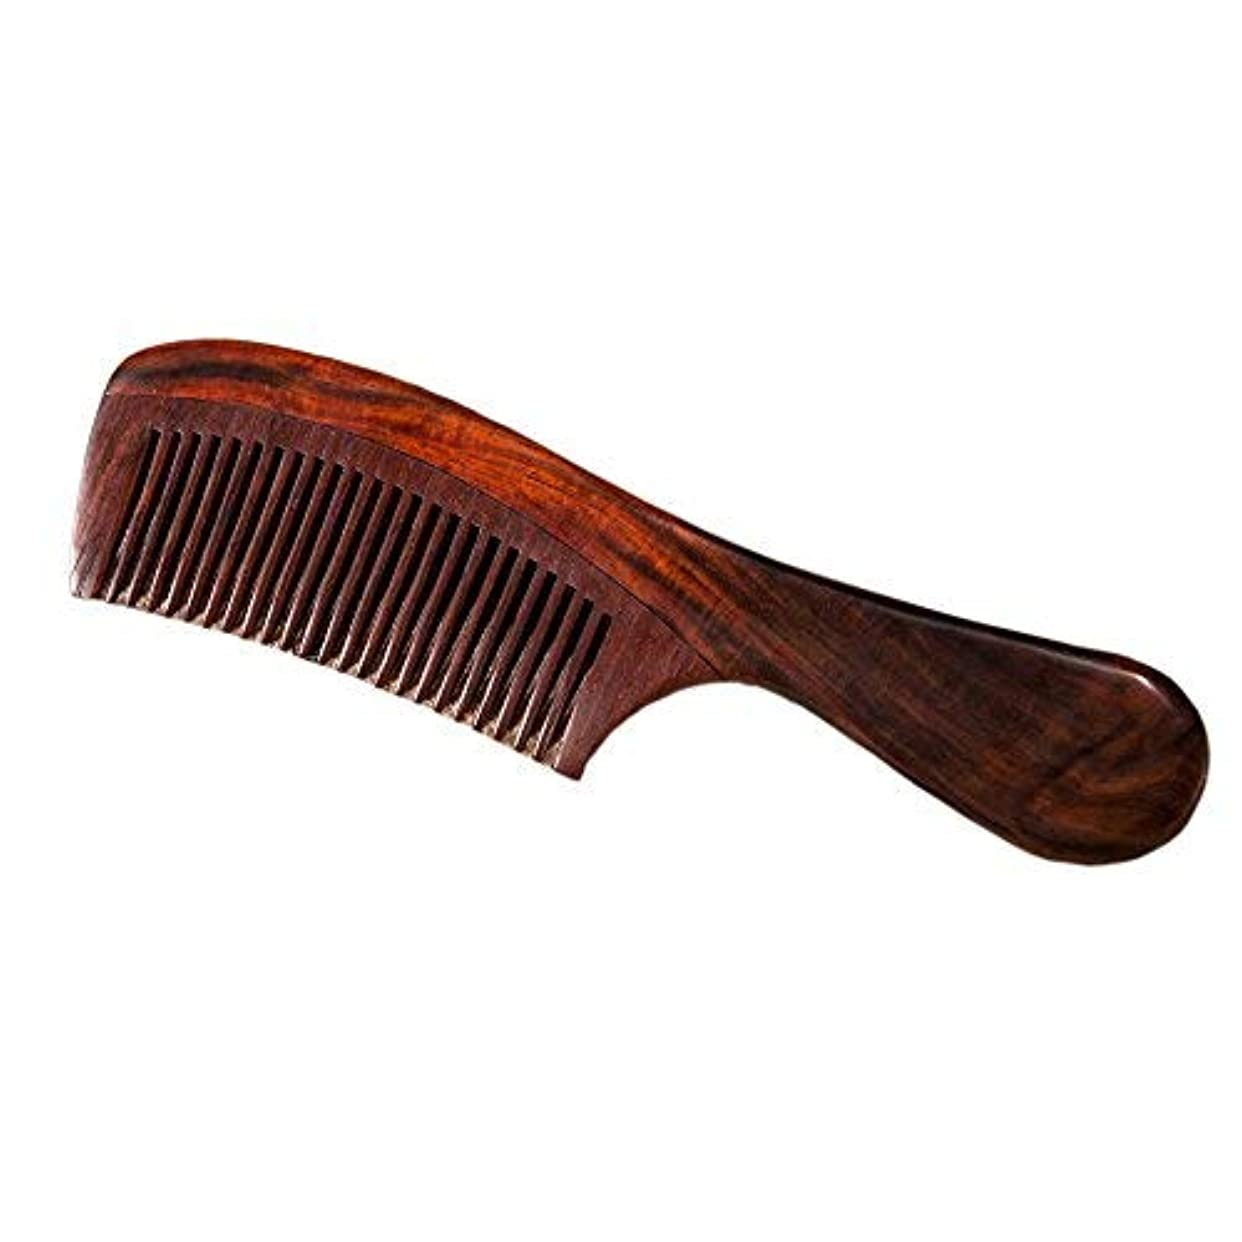 発揮する頼むスロベニアNatural Redwood Hair Comb, No Static Handmade Medium Tooth Hair Comb, Smooth and Comfortable Message Wood Comb with Handle 19cm [並行輸入品]